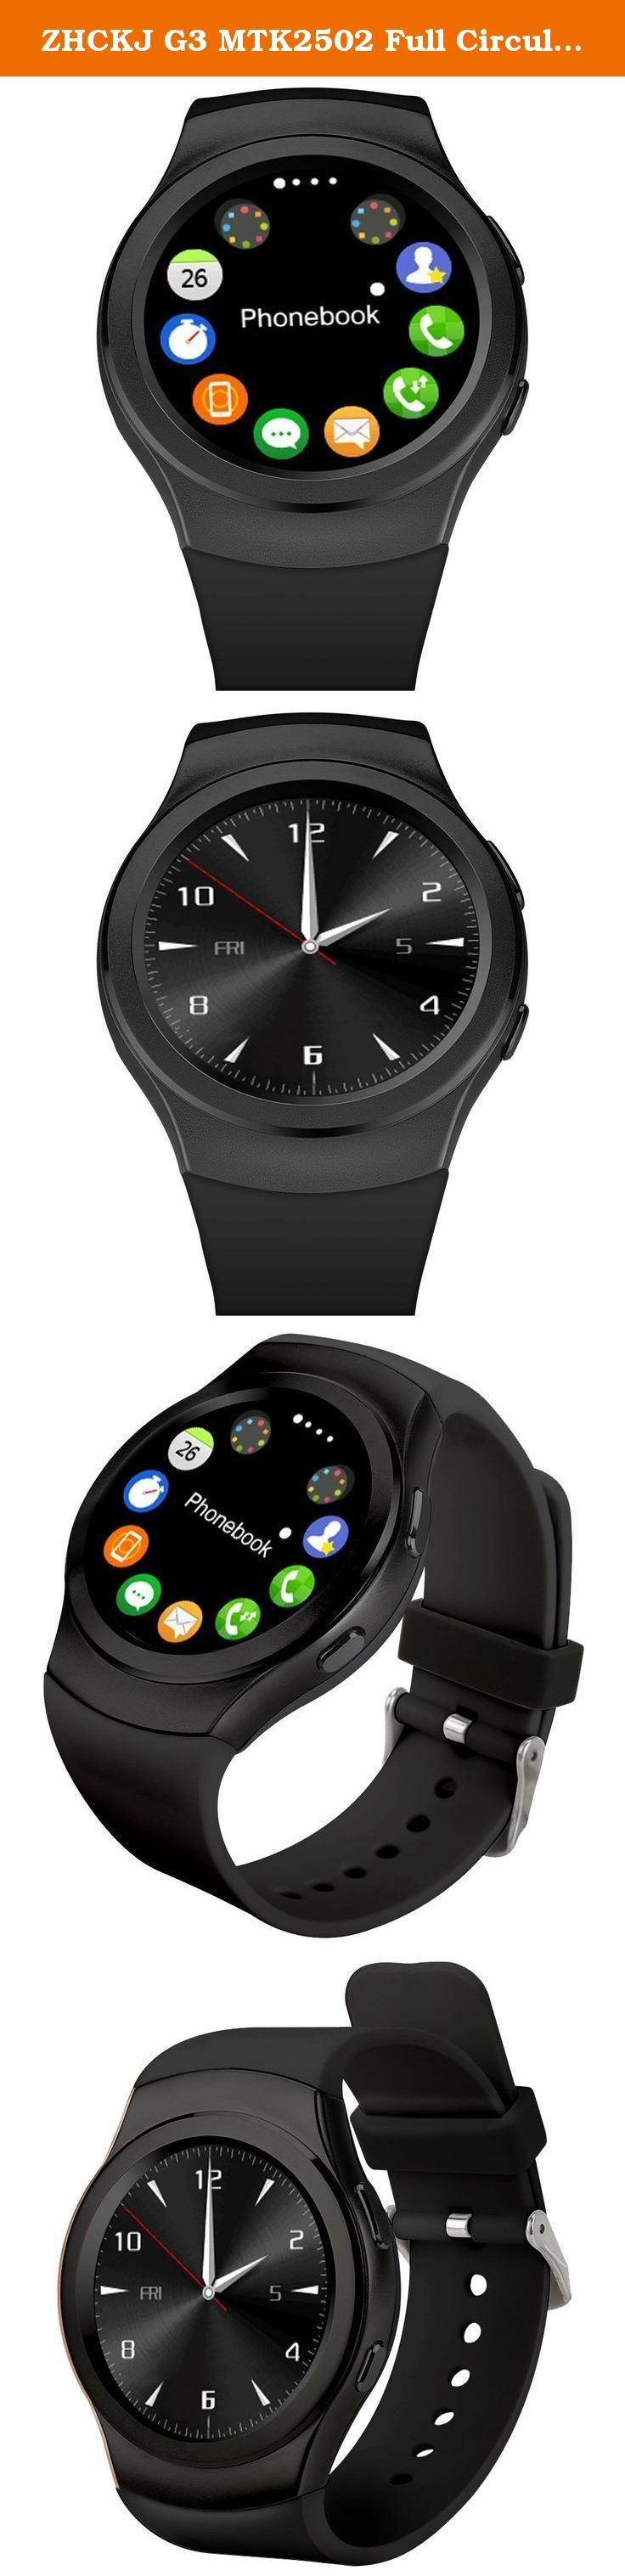 ZHCKJ G3 MTK2502 Full Circular Bluetooth Smartwatch SIM GPRS Smart Watch Smartwatch for iPhone Android Phone. Highlights . 1.3'' IPS Full circular capative touch screen , no black bar . MTK2502 CPU , Fully compatible with Apple iPhone & Android Phone . Support SIM / TF Card Slot , Allow you use the watch independently and download the APPs . Stainless Steel Body + TPU Watchband , Durable and Comfortable . 380mAh Large capacity battery , Long time standby . Magnetic Suction Charging…